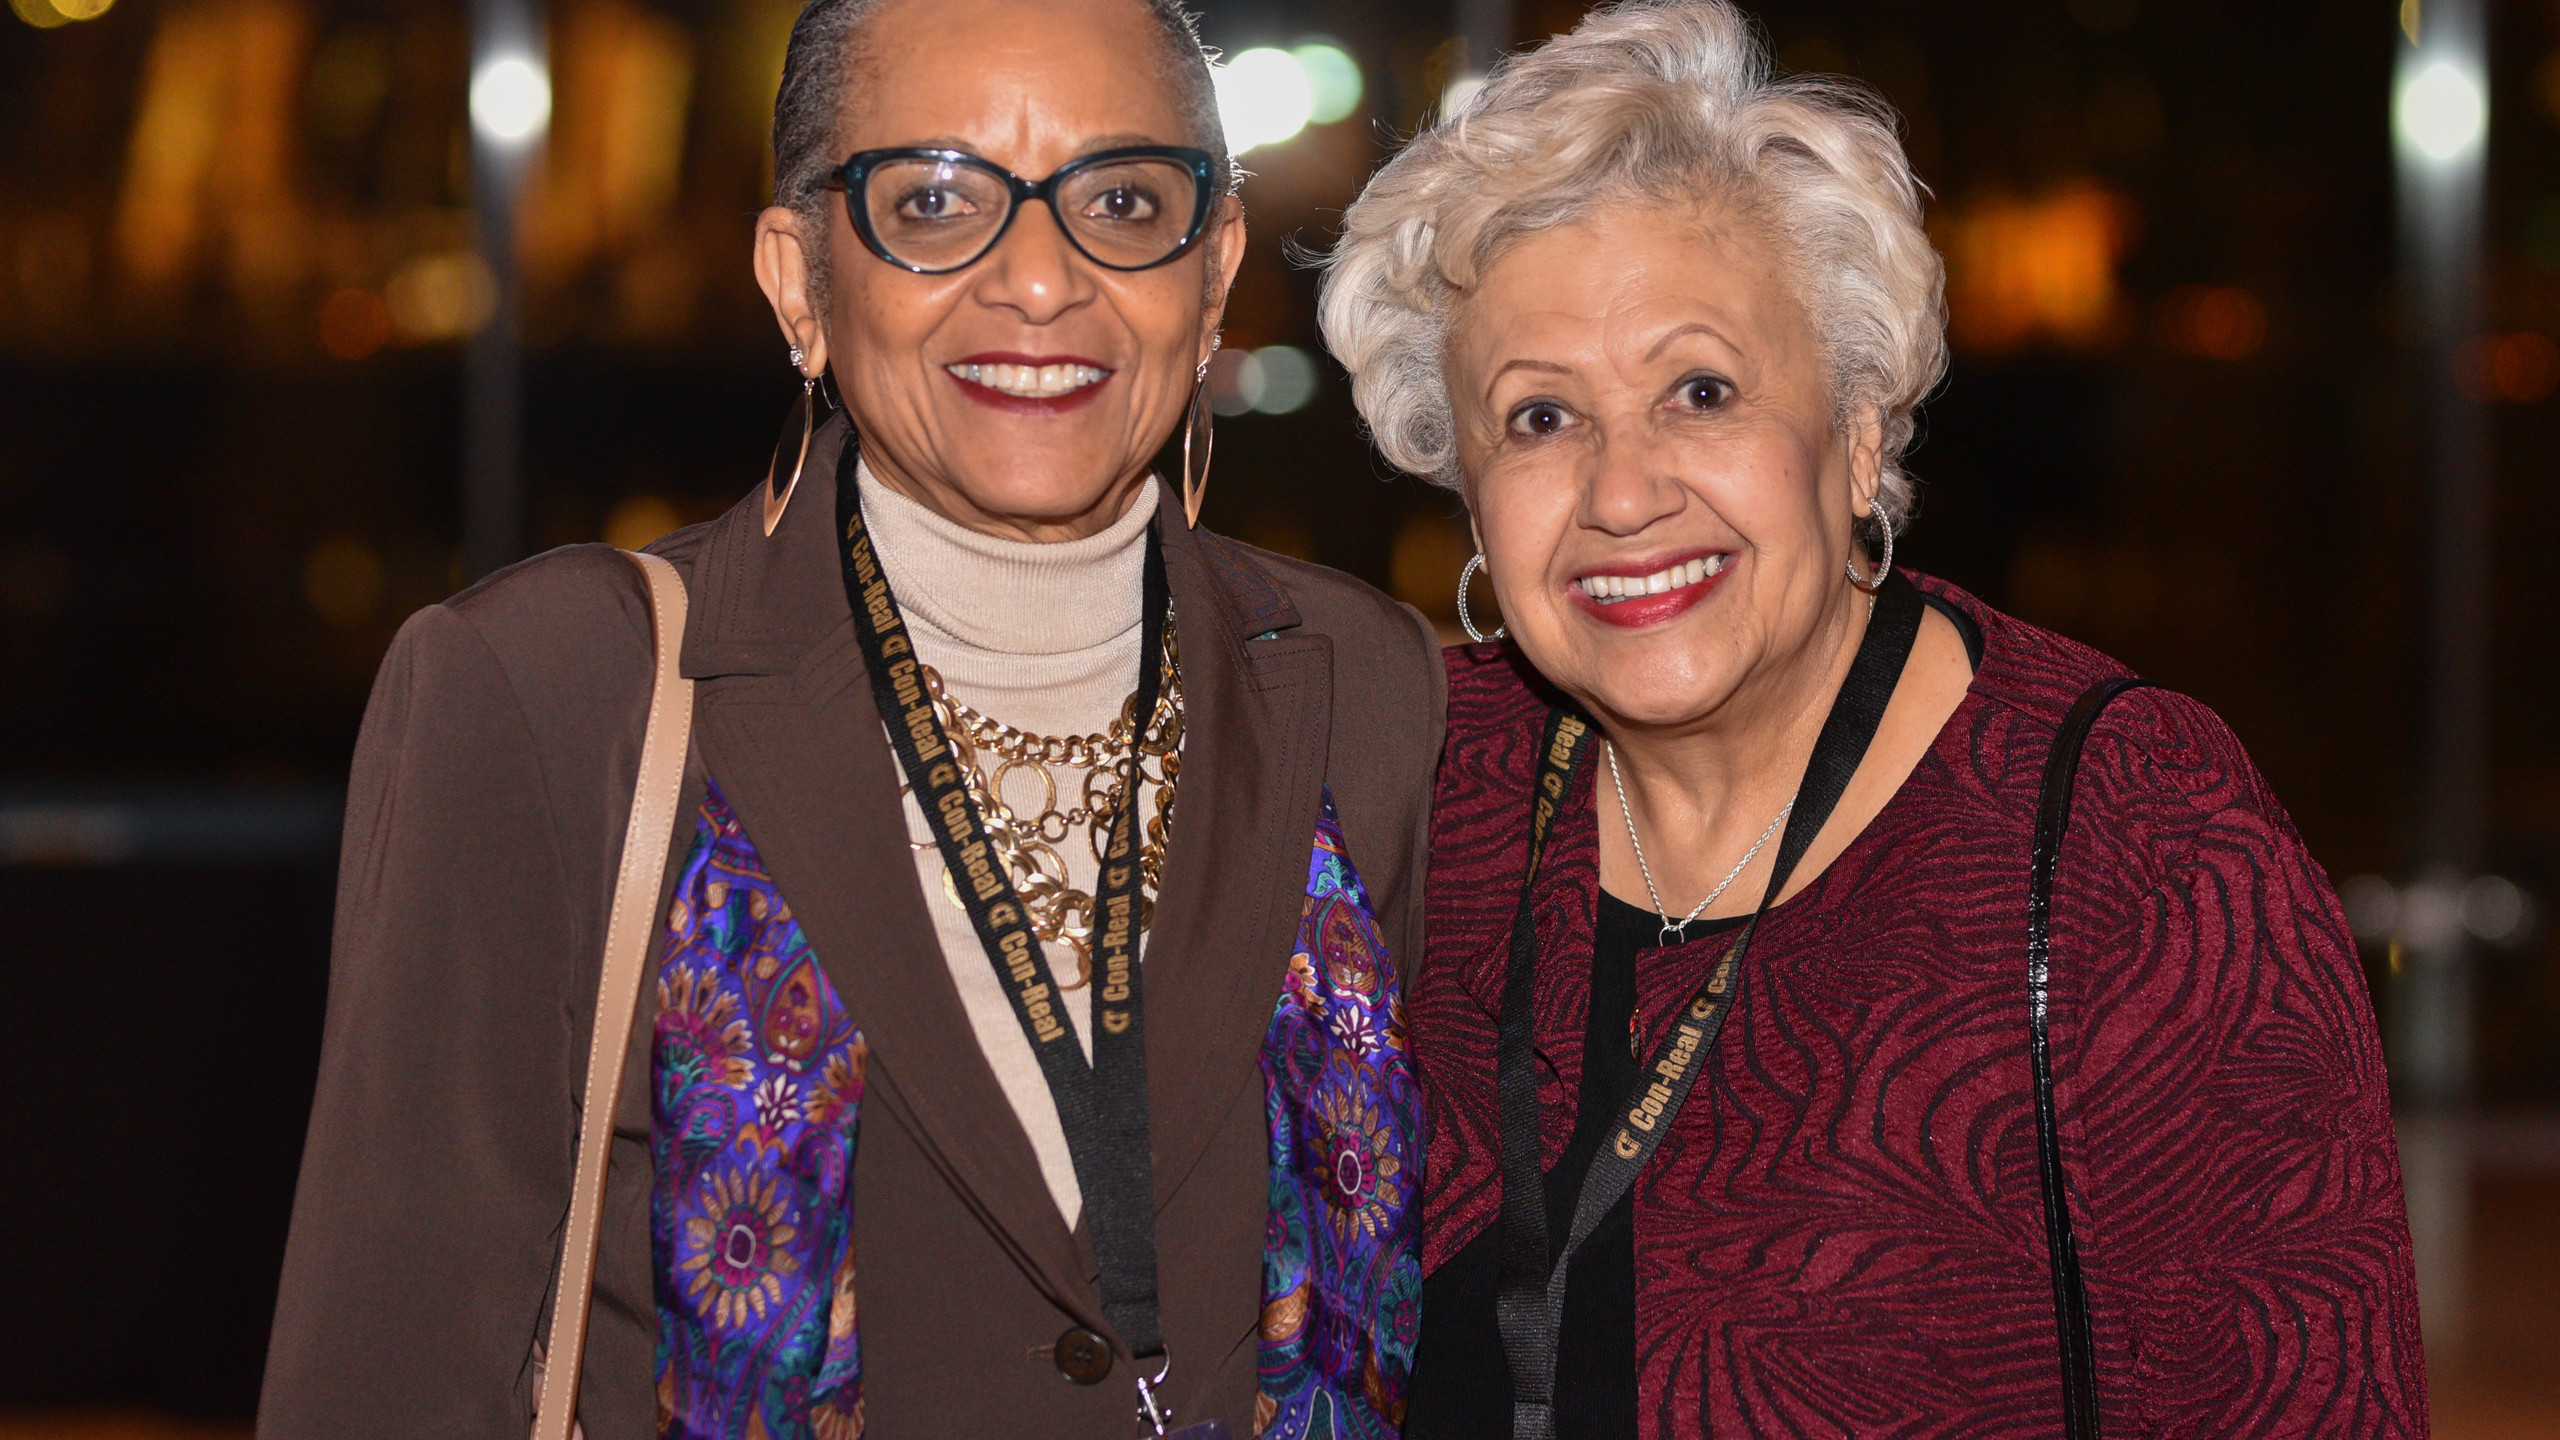 Two older black women, one with glasses, smiling.